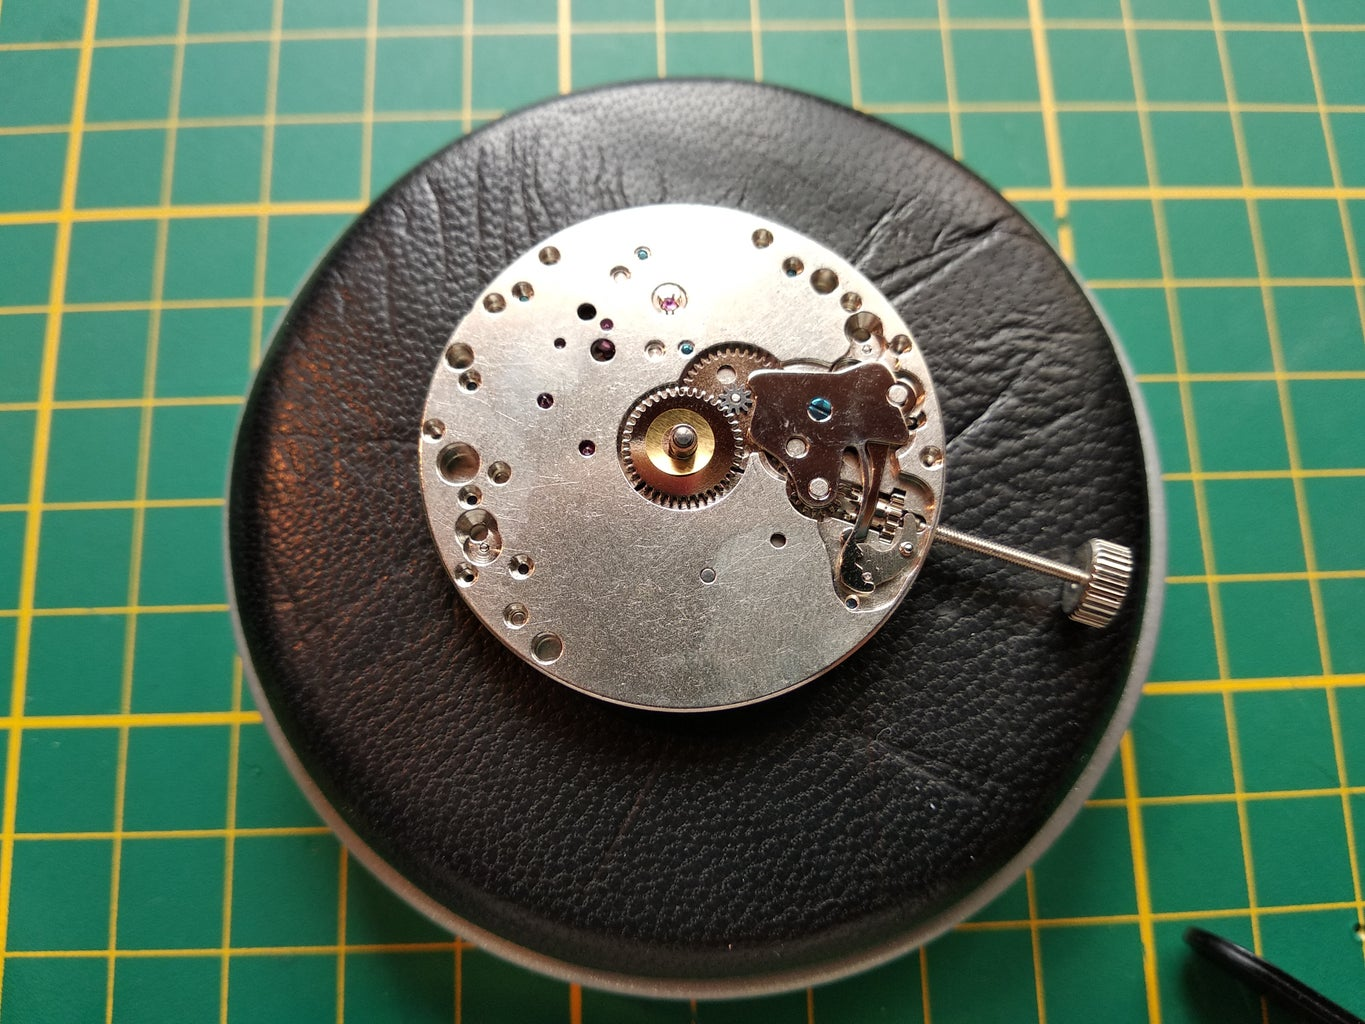 Gear + Washer + Dial